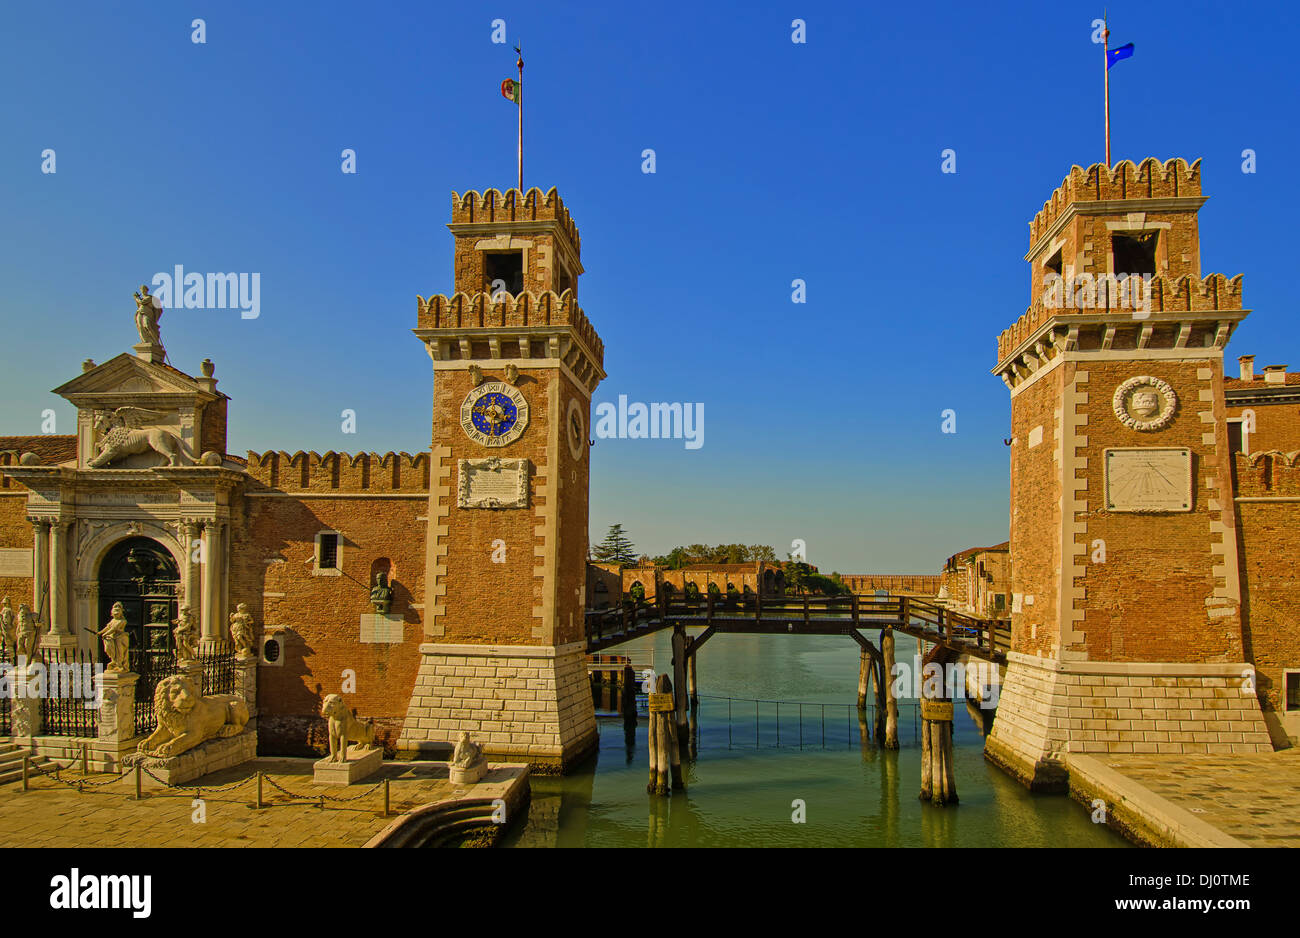 Gates and entrance  to the Arsenale in Venice, Italy. - Stock Image